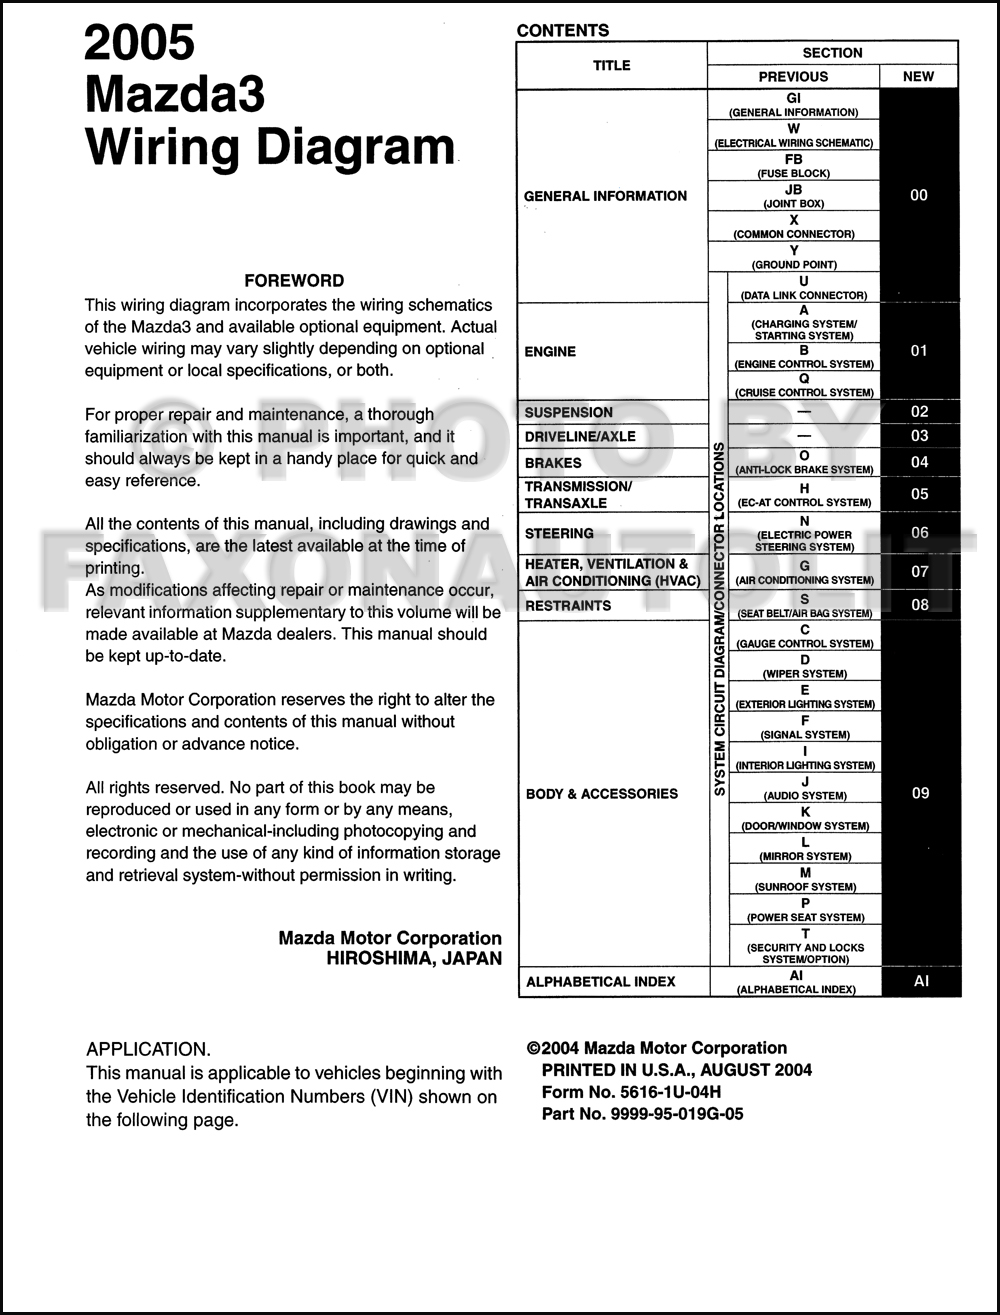 Wiring Diagram 2005 Mazda 6 : Mazda charging wiring diagram for free